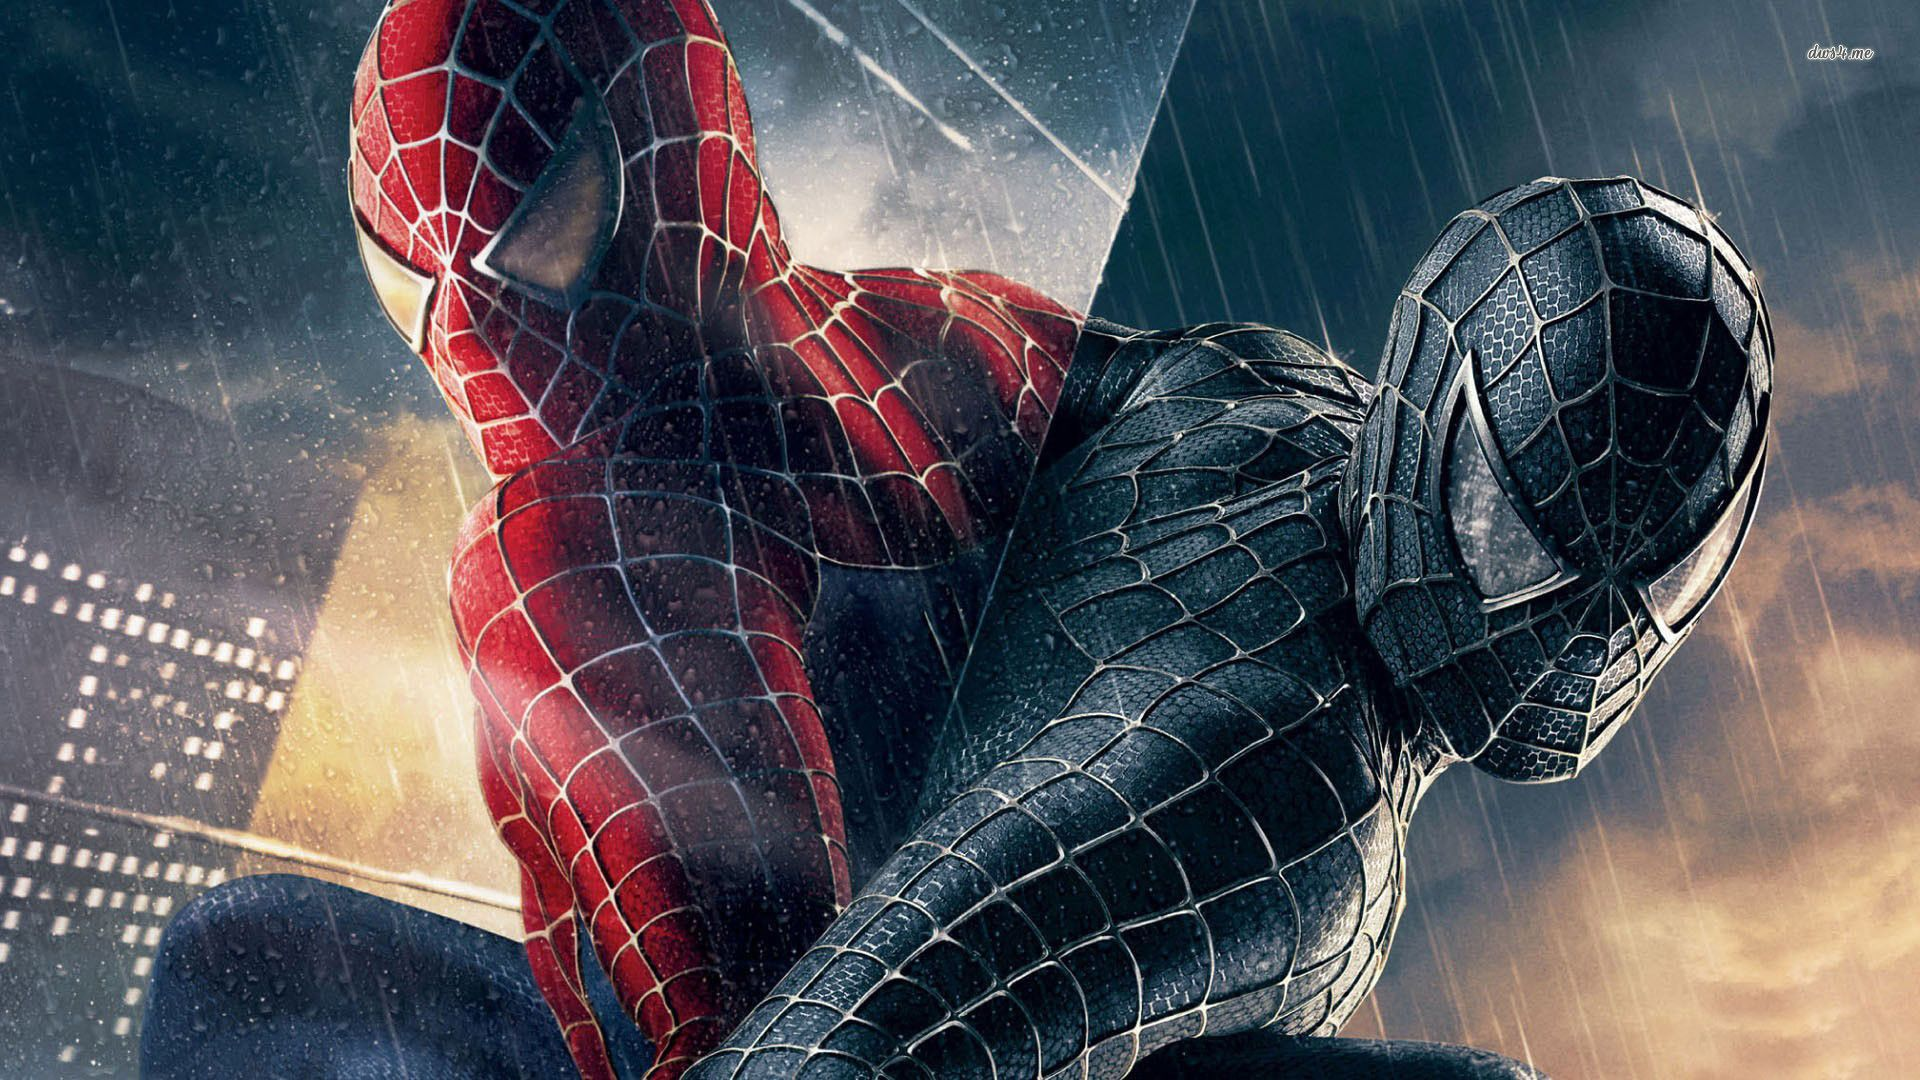 Free Download Spider Man 3 Wallpaper Movie Wallpapers 1920x1080